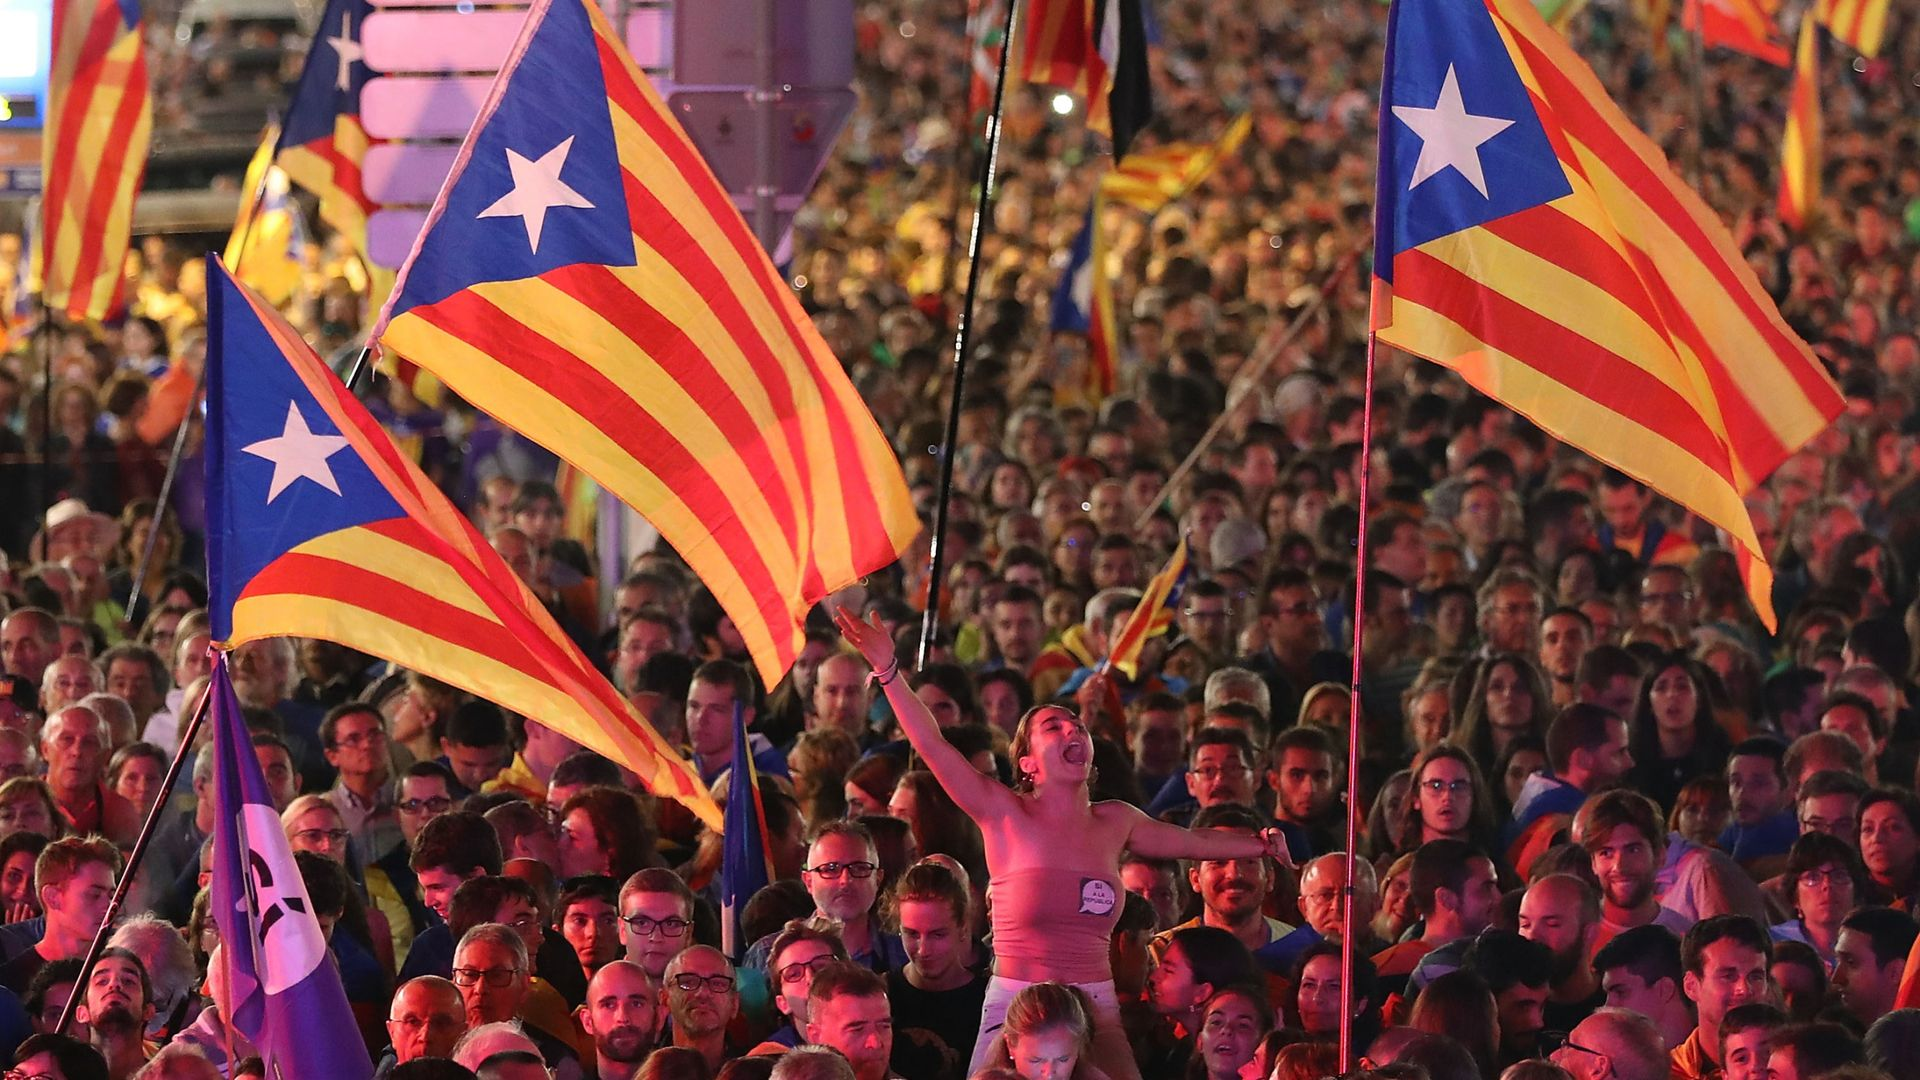 catalonia independence Last week, catalan president carles puigdemont declared independence from spain the move, which followed a controversial referendum, was greeted with wild applause on the streets of barcelona, where large crowds had gathered to watch the speech.